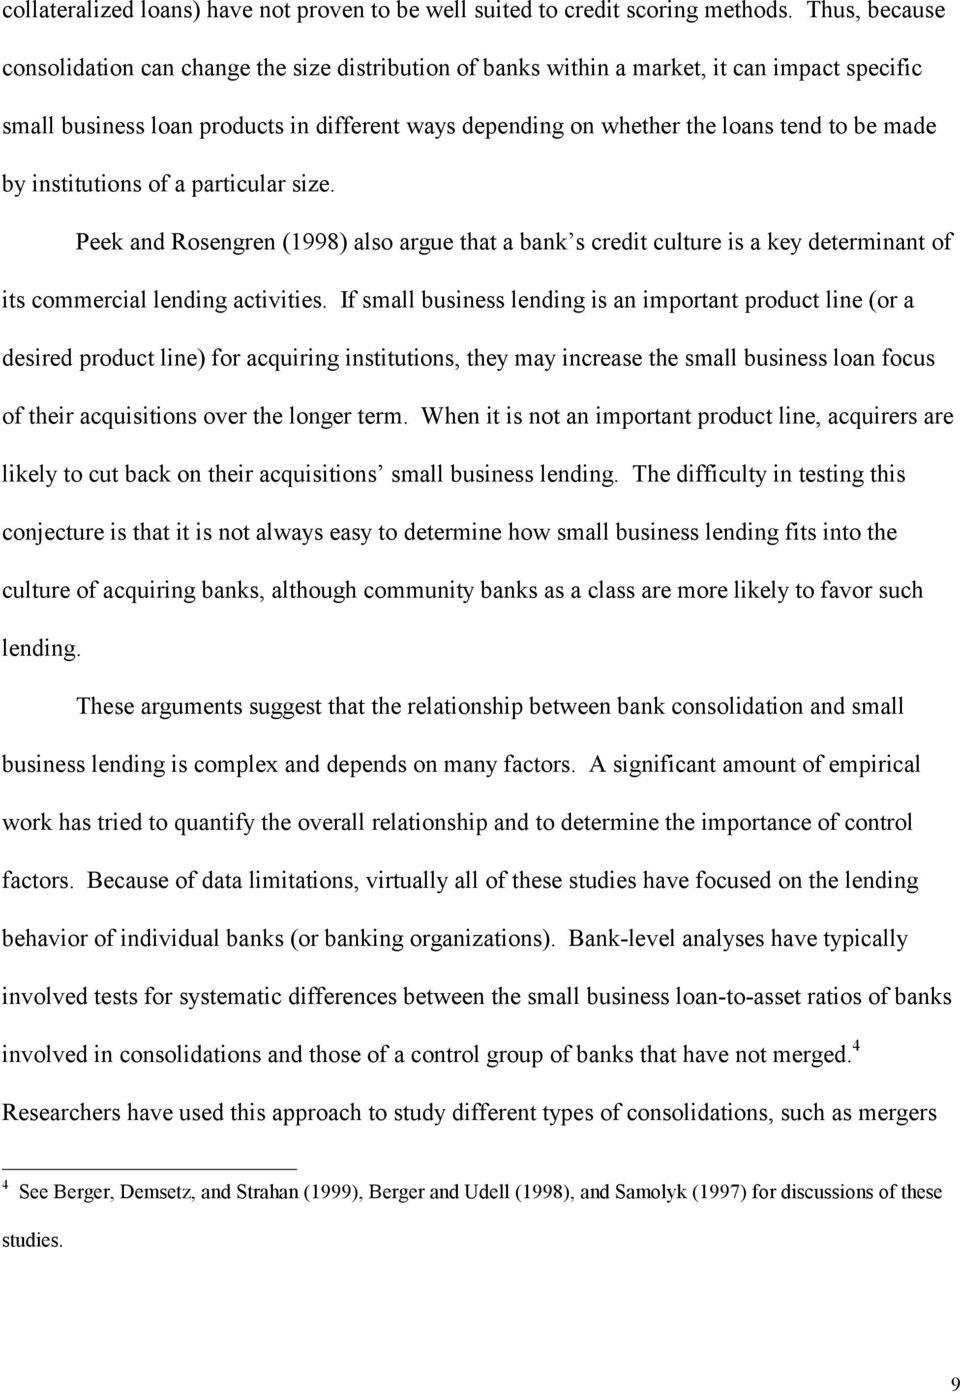 made by institutions of a particular size. Peek and Rosengren (1998) also argue that a bank s credit culture is a key determinant of its commercial lending activities.